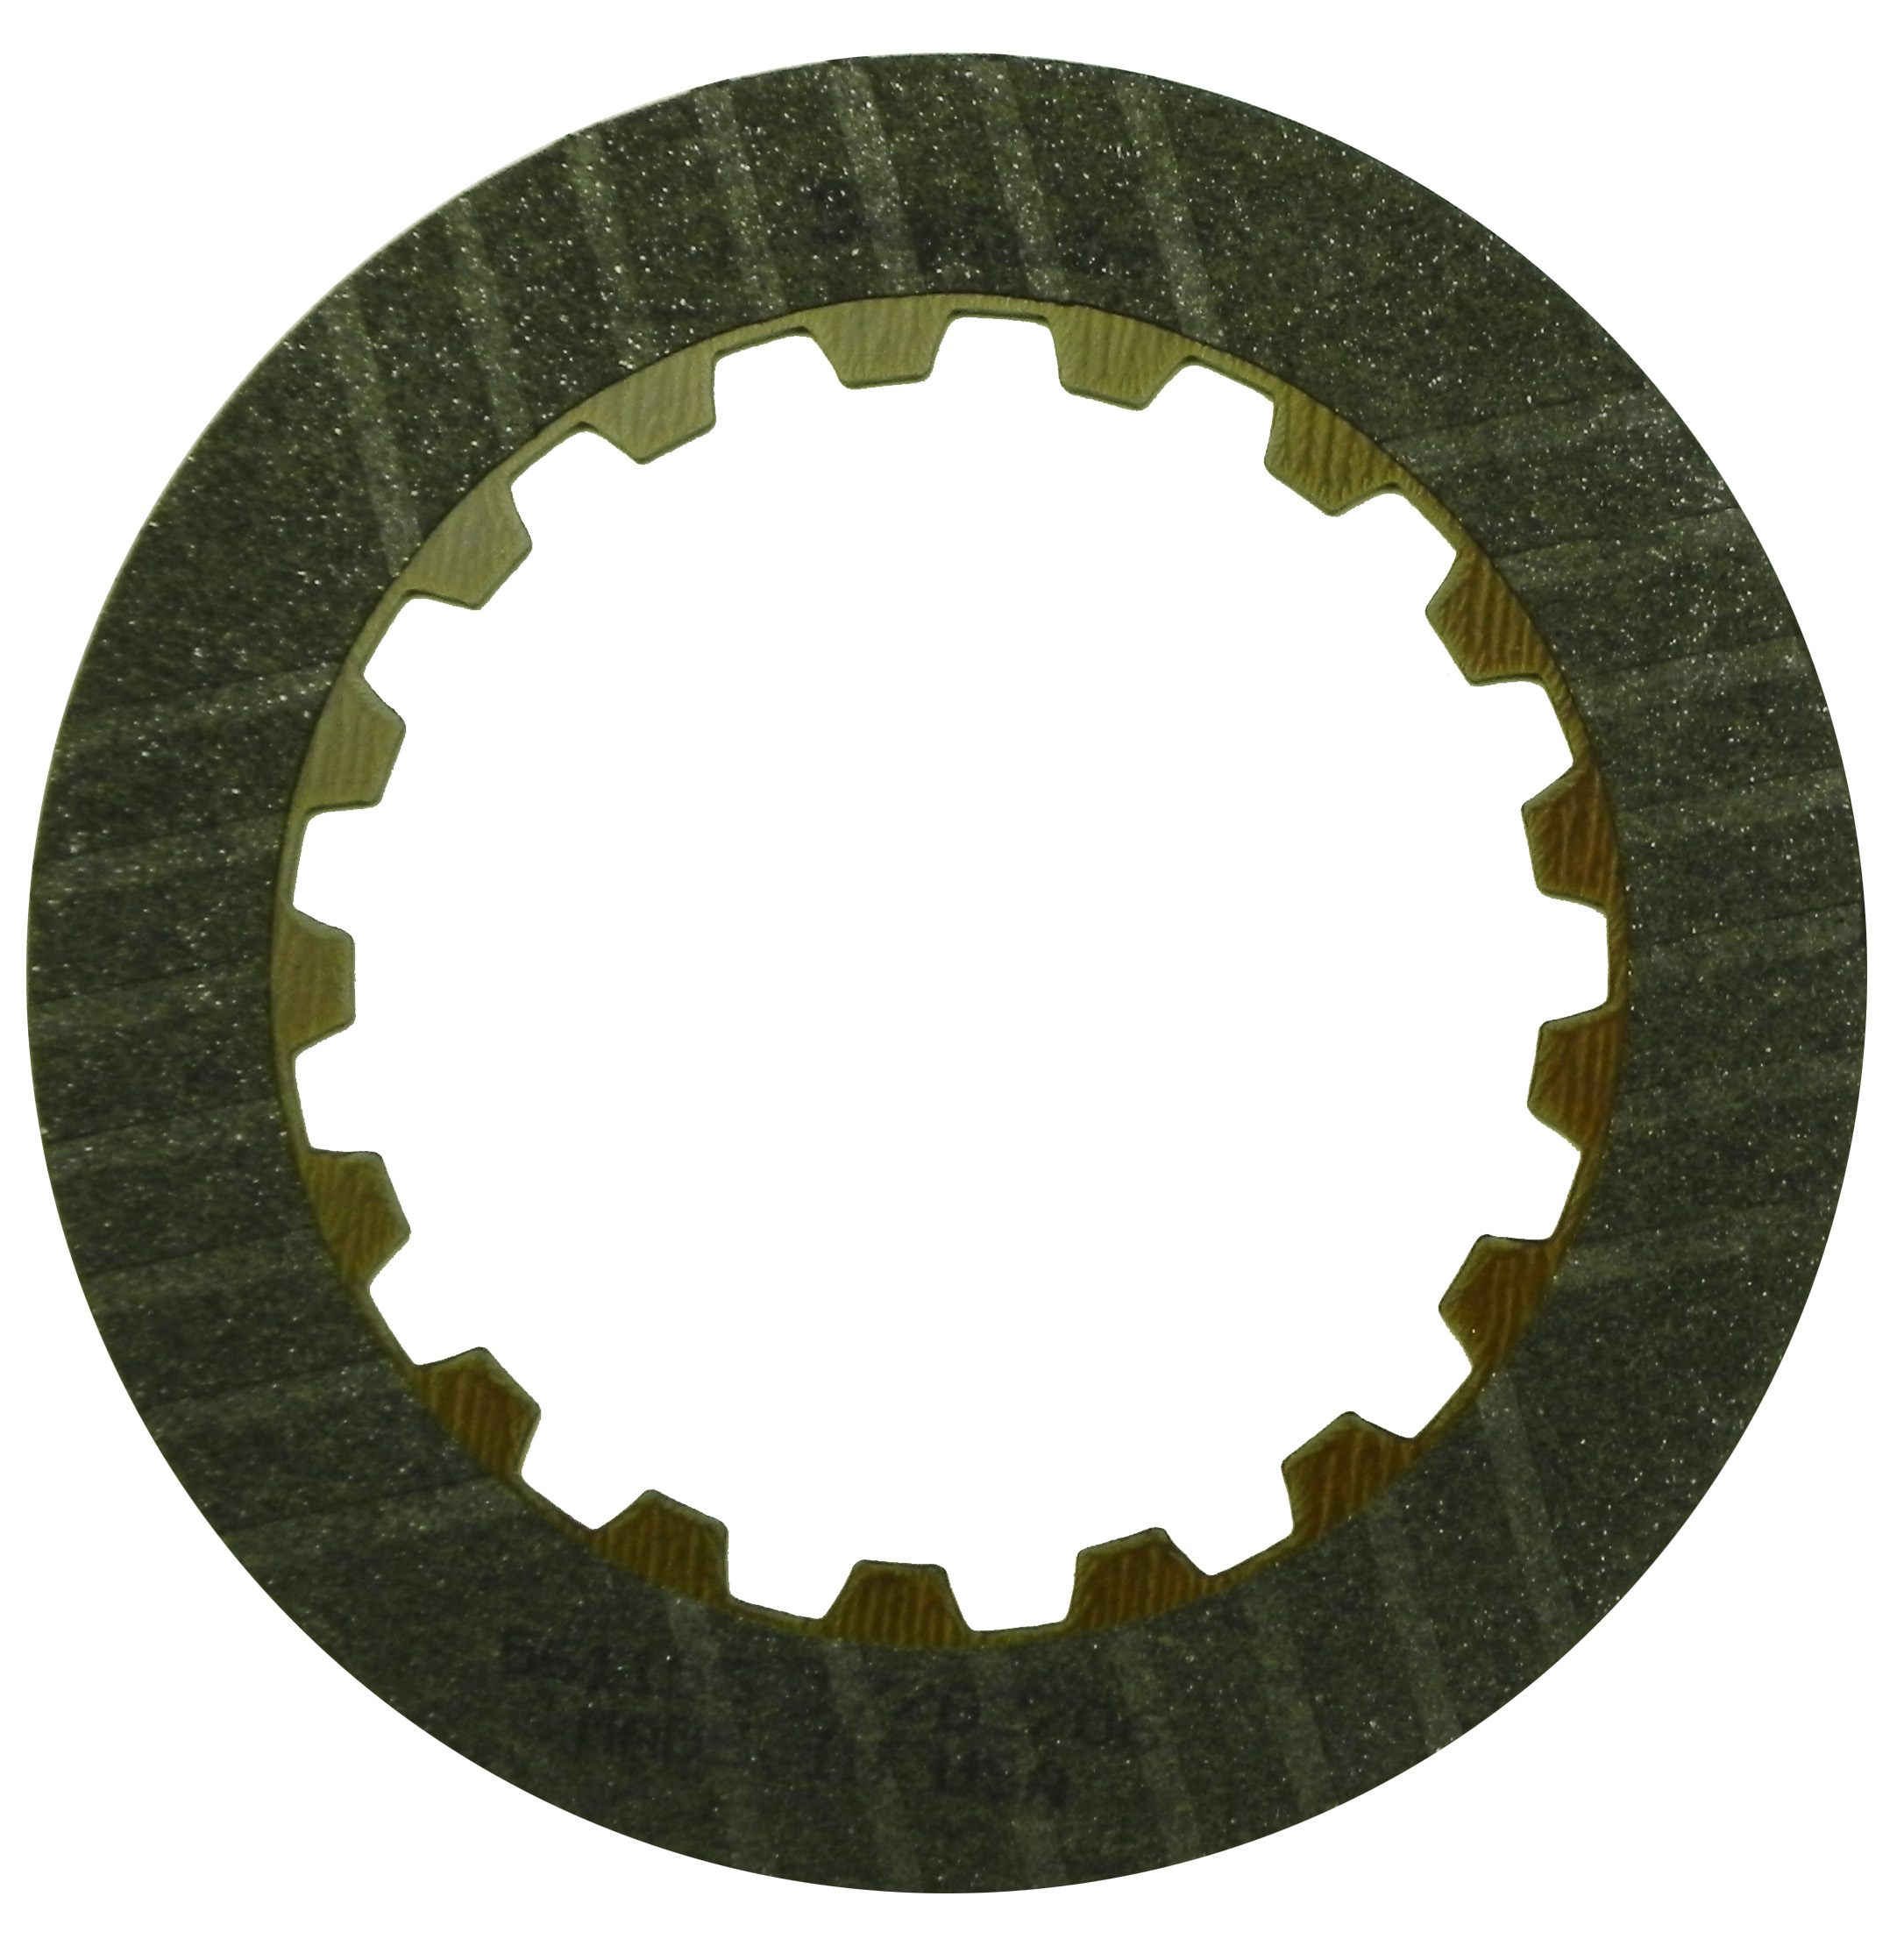 R561155 | 1991-2005 Friction Clutch Plate High Energy Differential High Energy